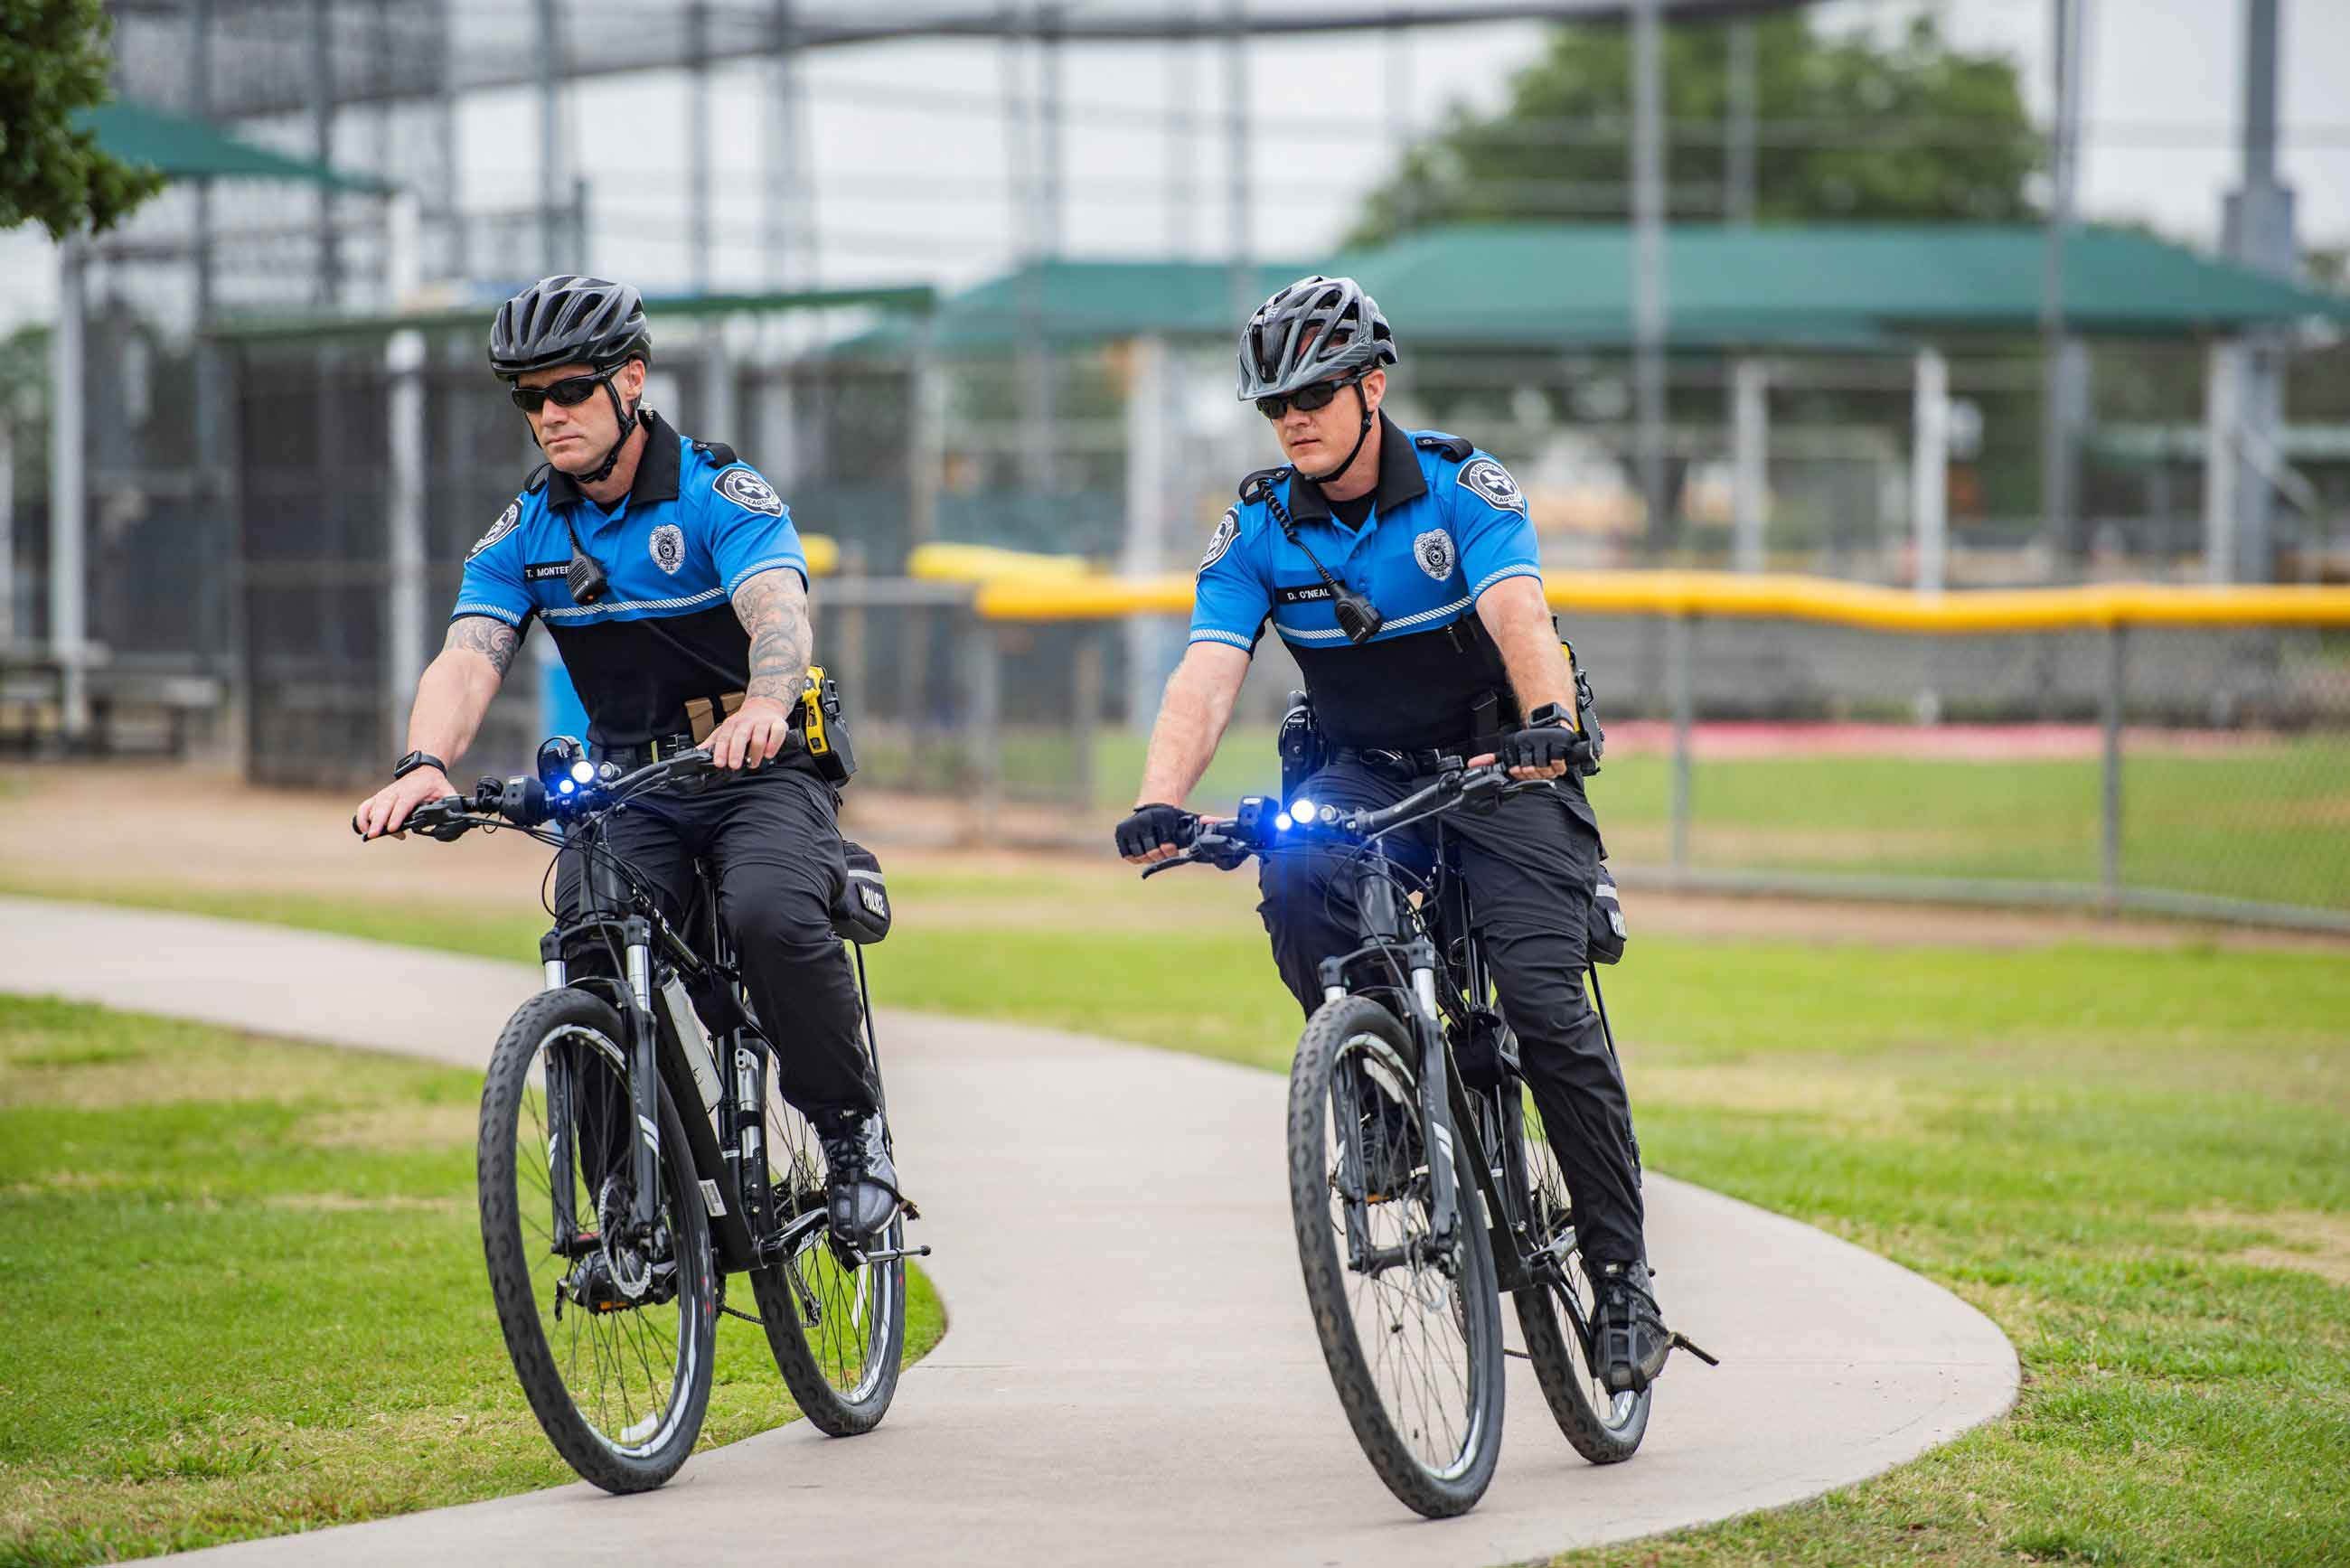 2 police officers bicycling